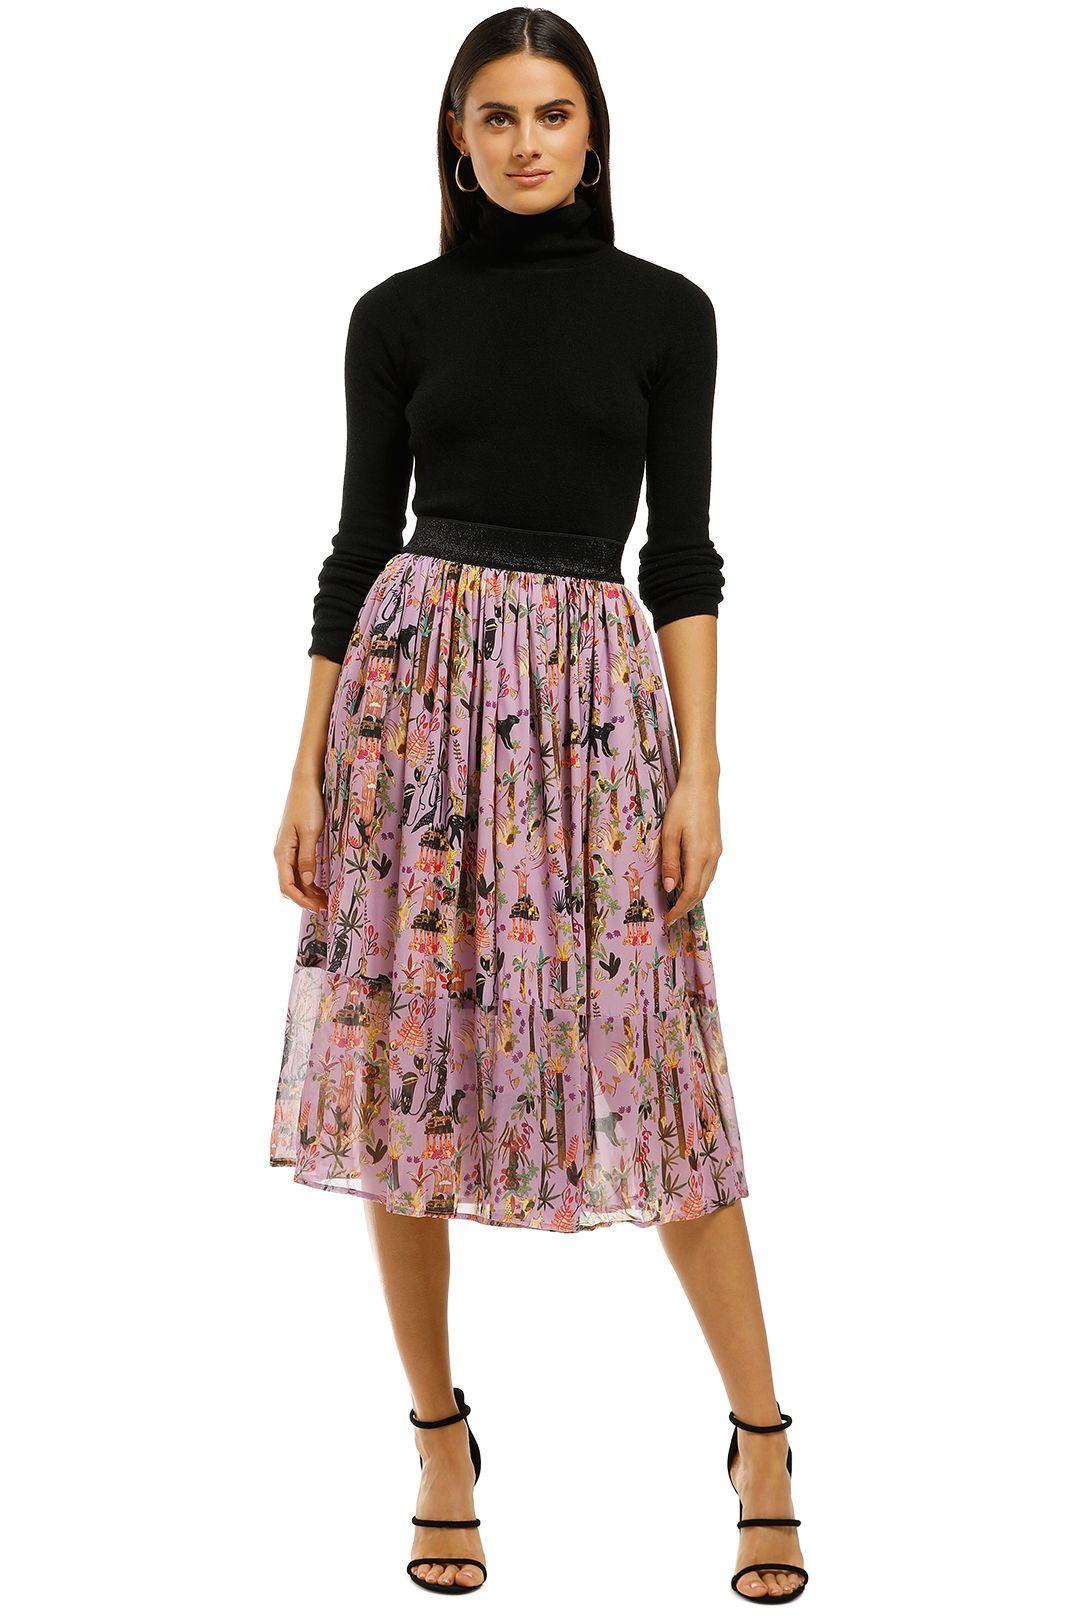 Curate-by-Trelise-Cooper-Skirt-Of-Art-Skirt-Lilac-Front